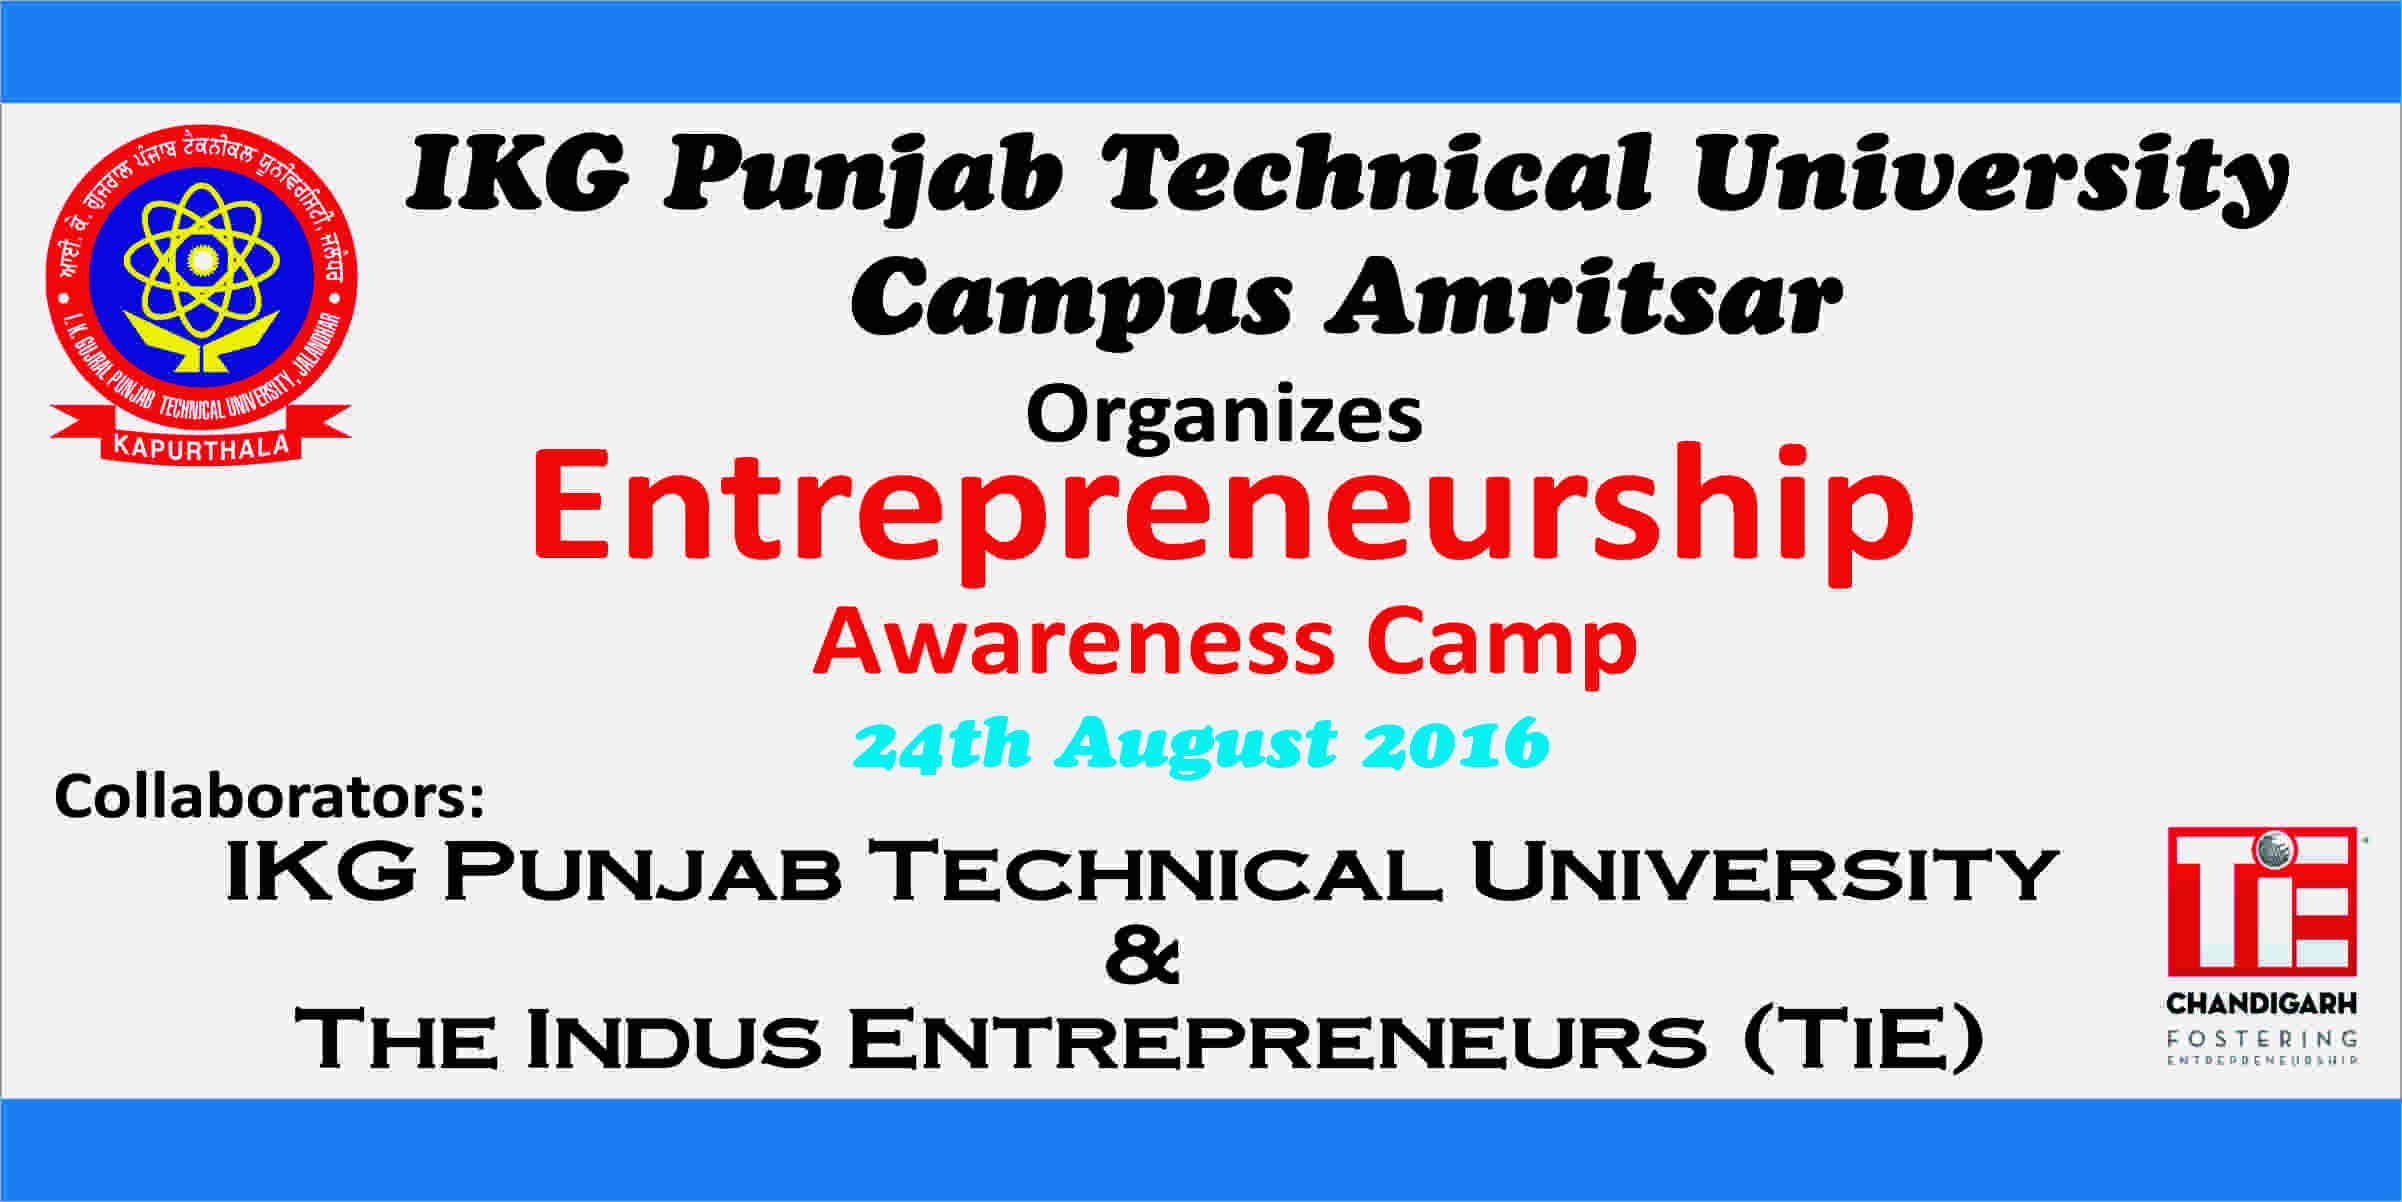 IKGPTU & TiE organized a One-Day Workshop on Entrepreneurship Awareness Camp on 24th August 2016